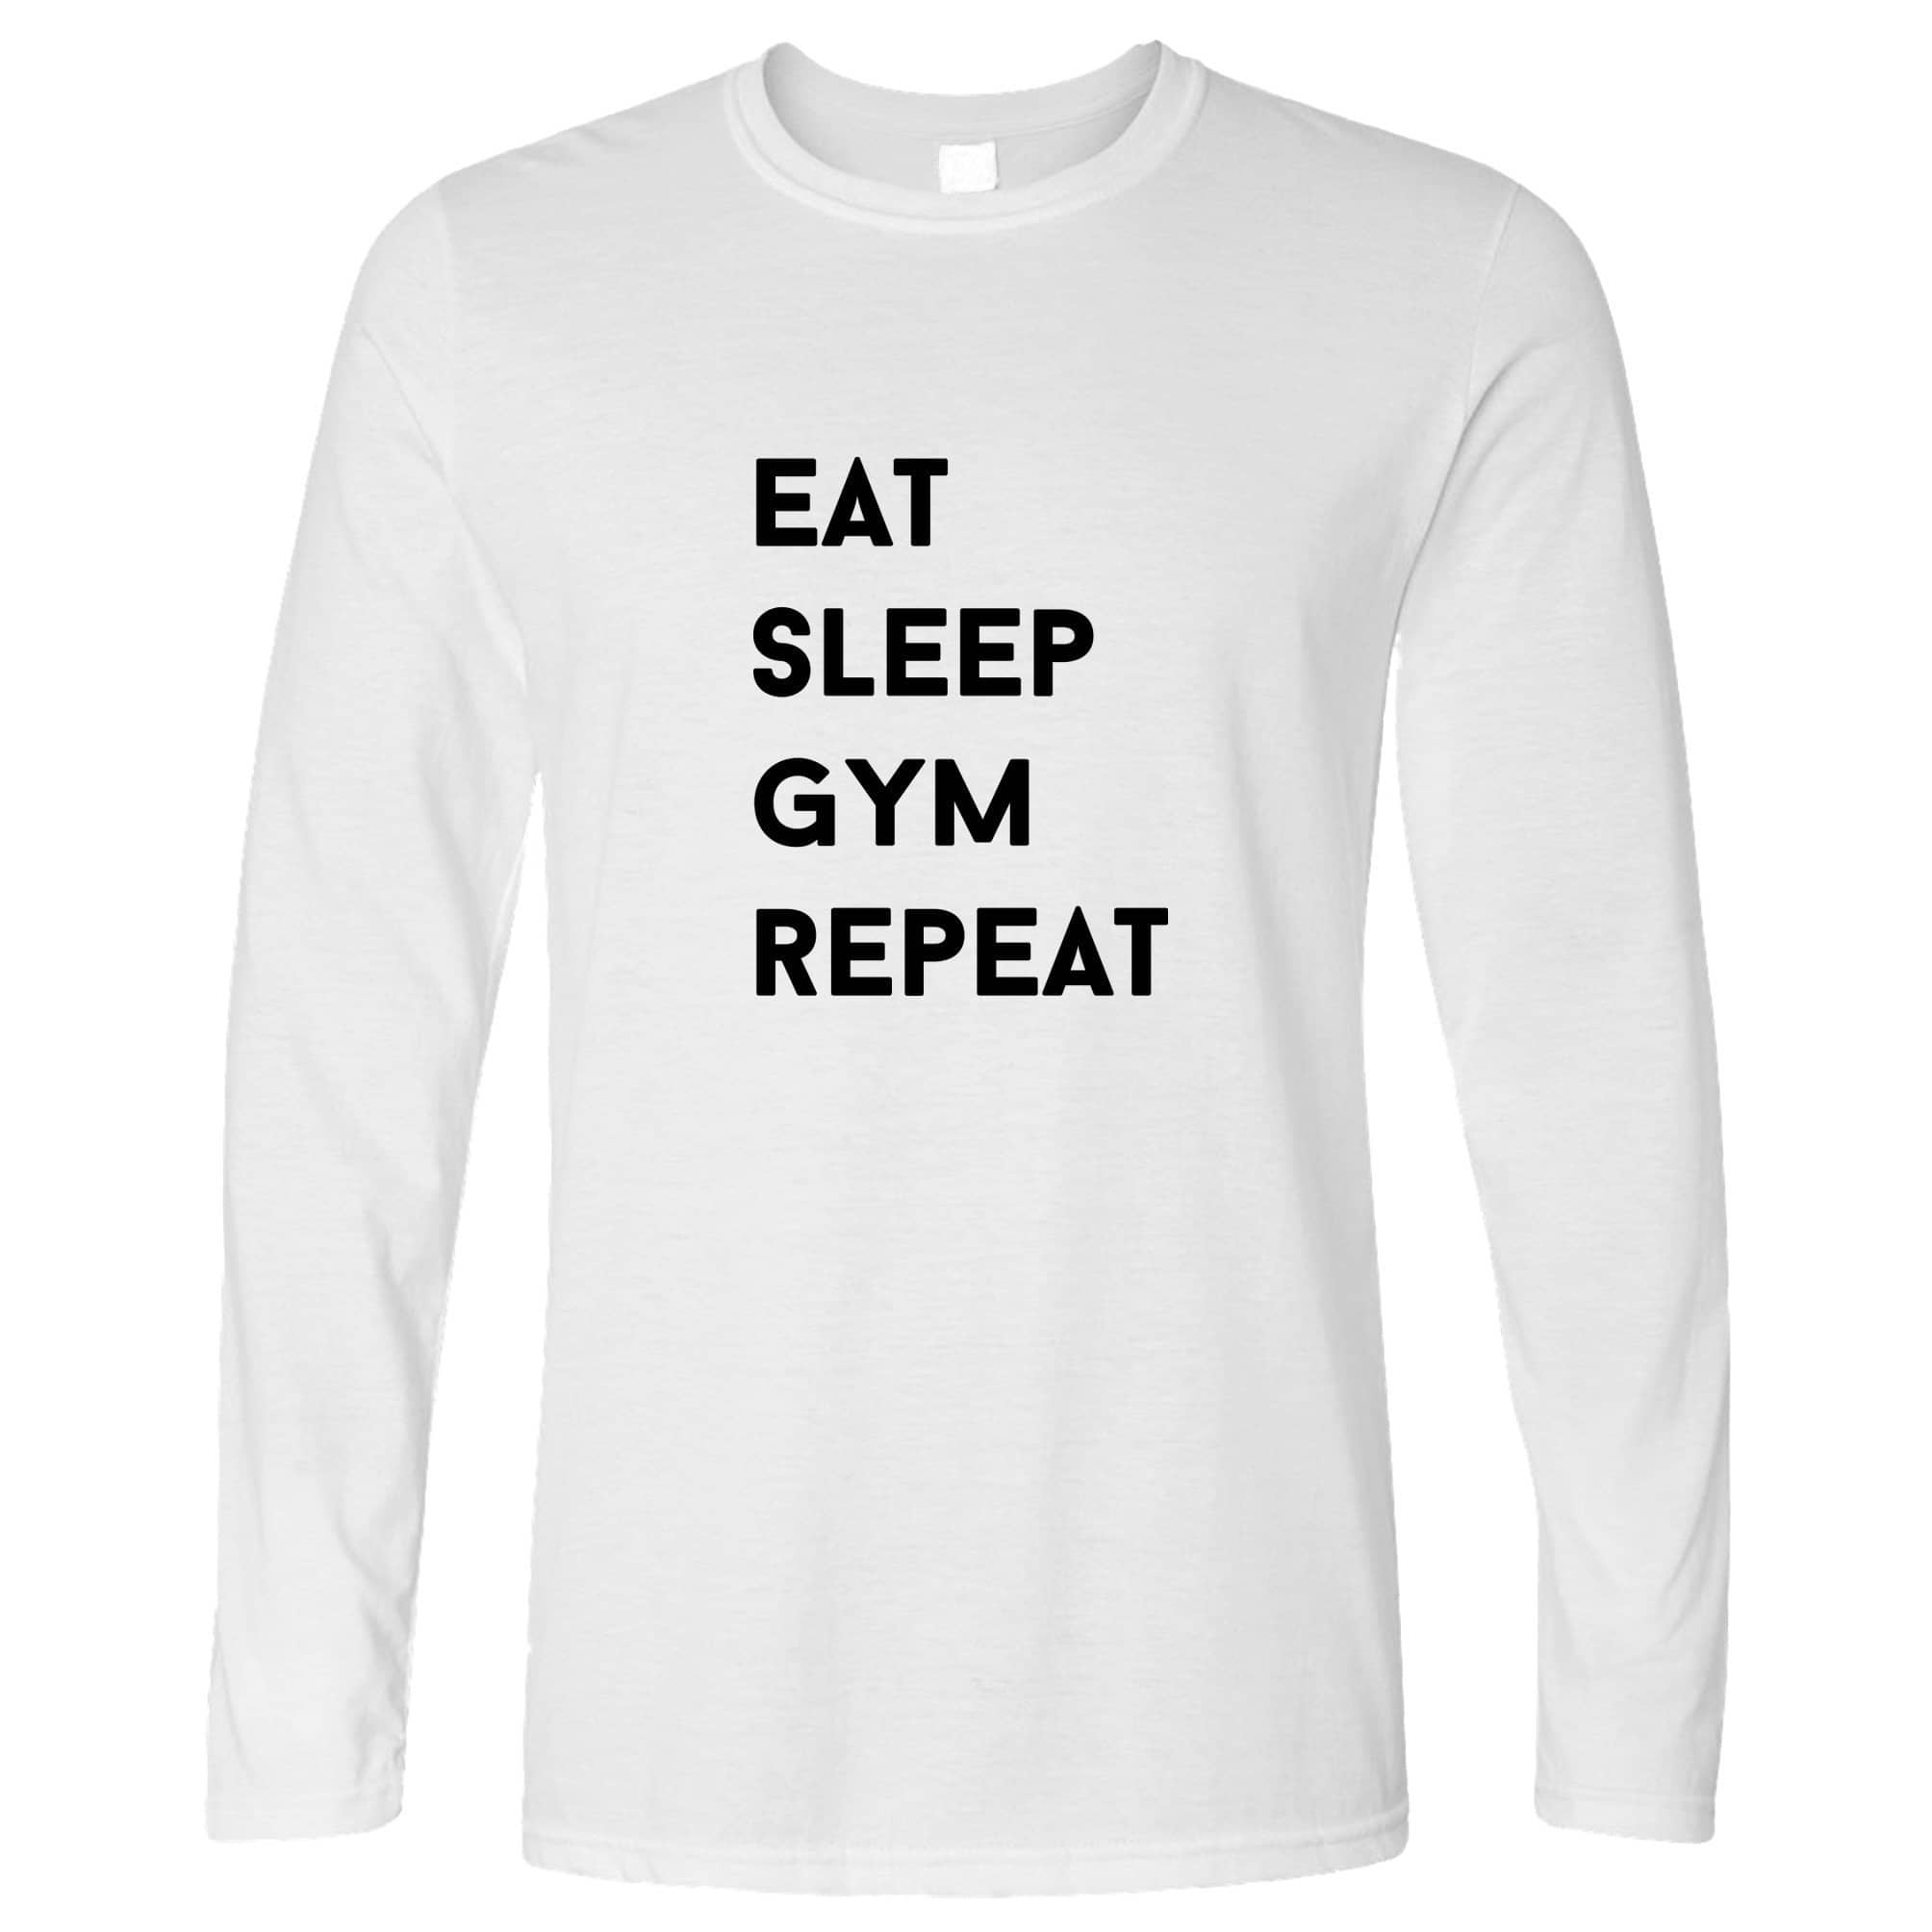 Novelty Long Sleeve Eat, Sleep, Gym, Repeat Slogan T-Shirt